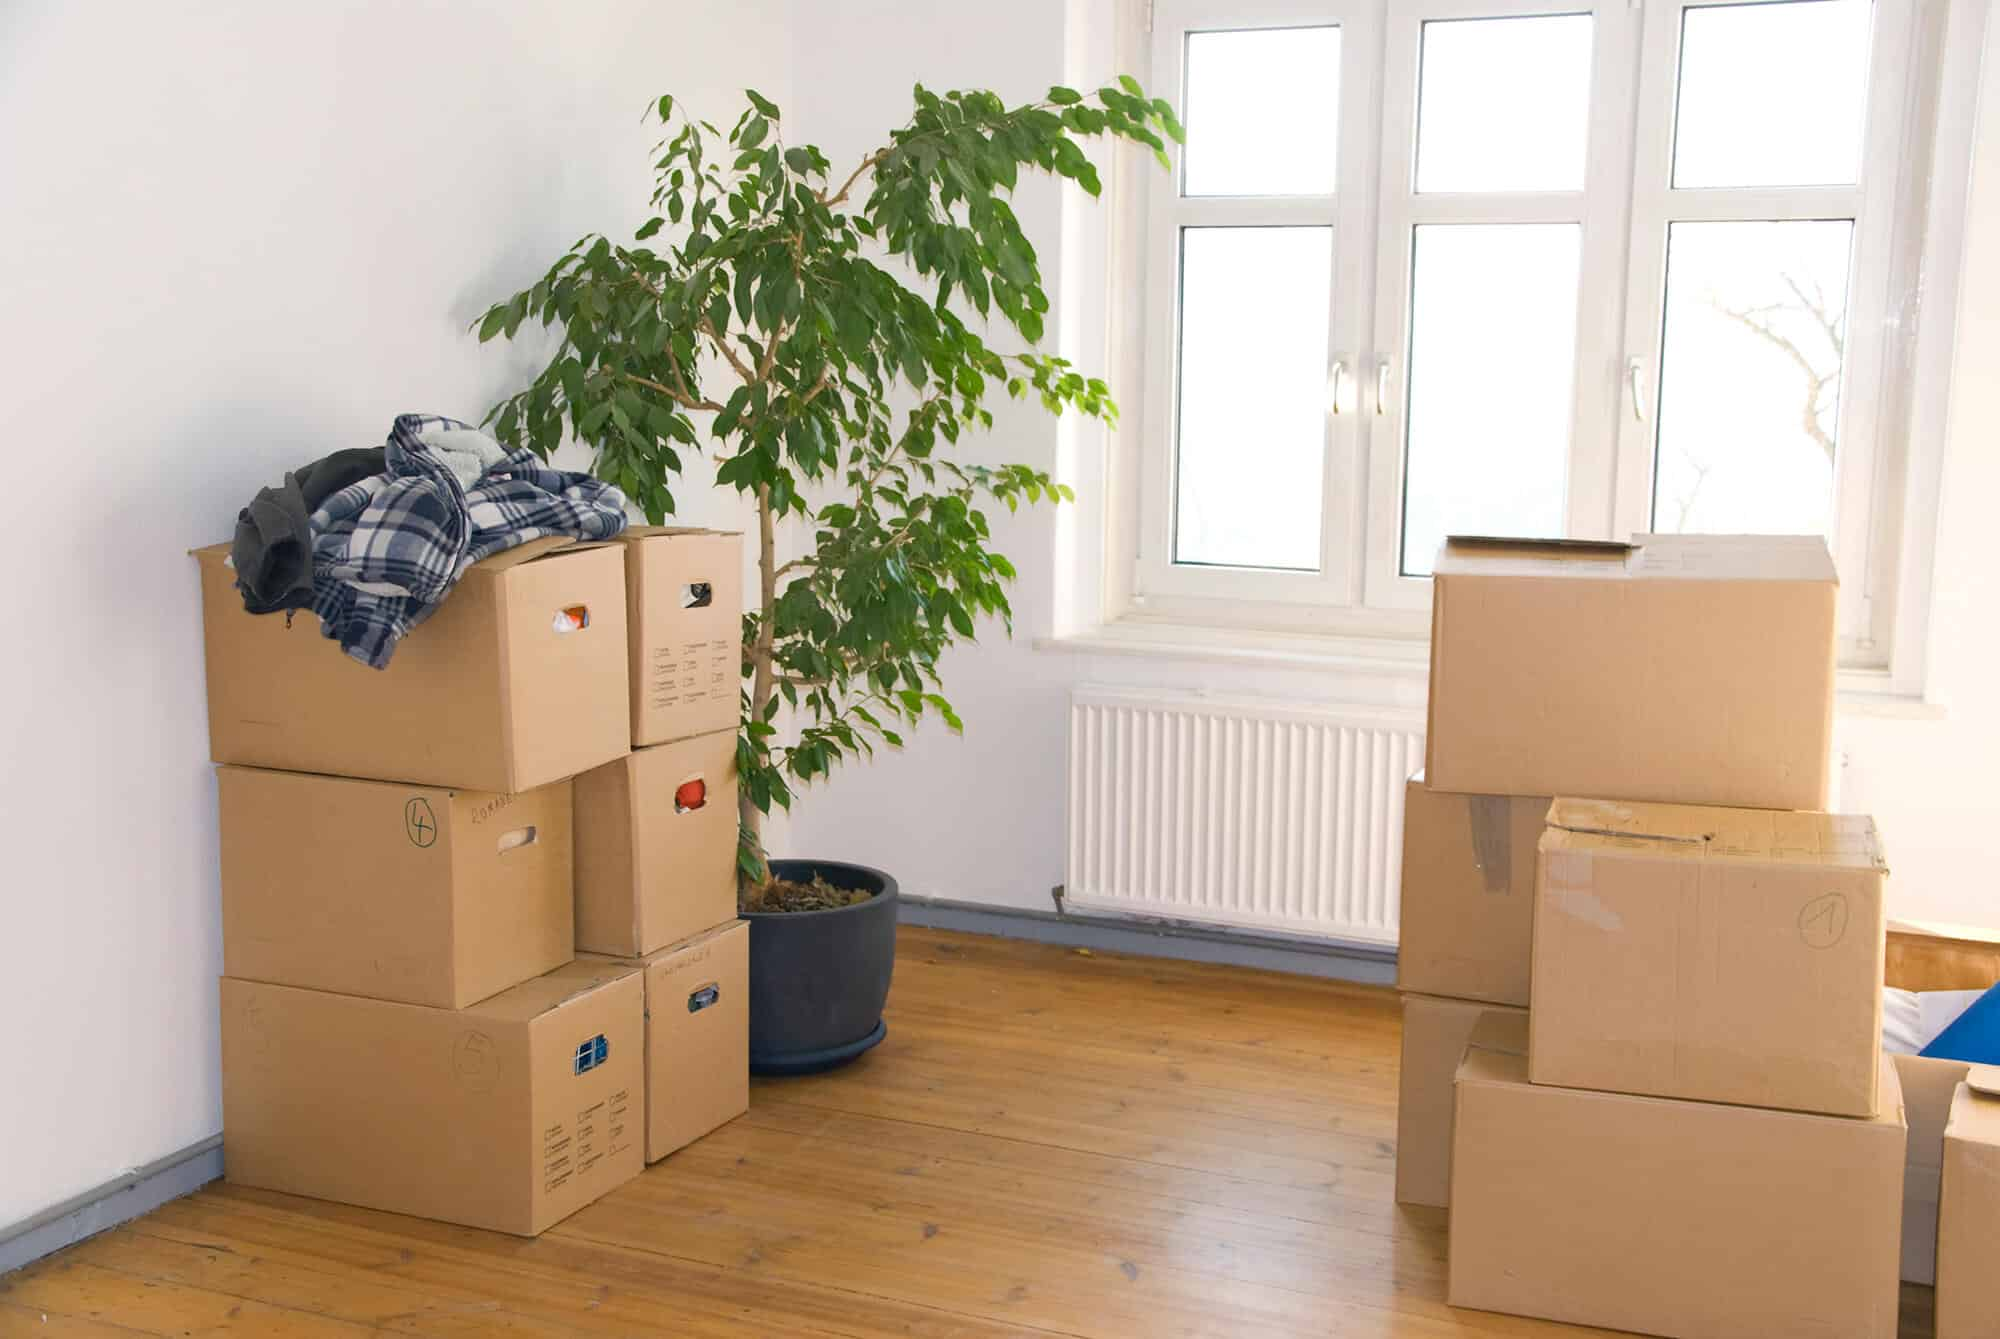 Commercial Moving services in Maui, HI